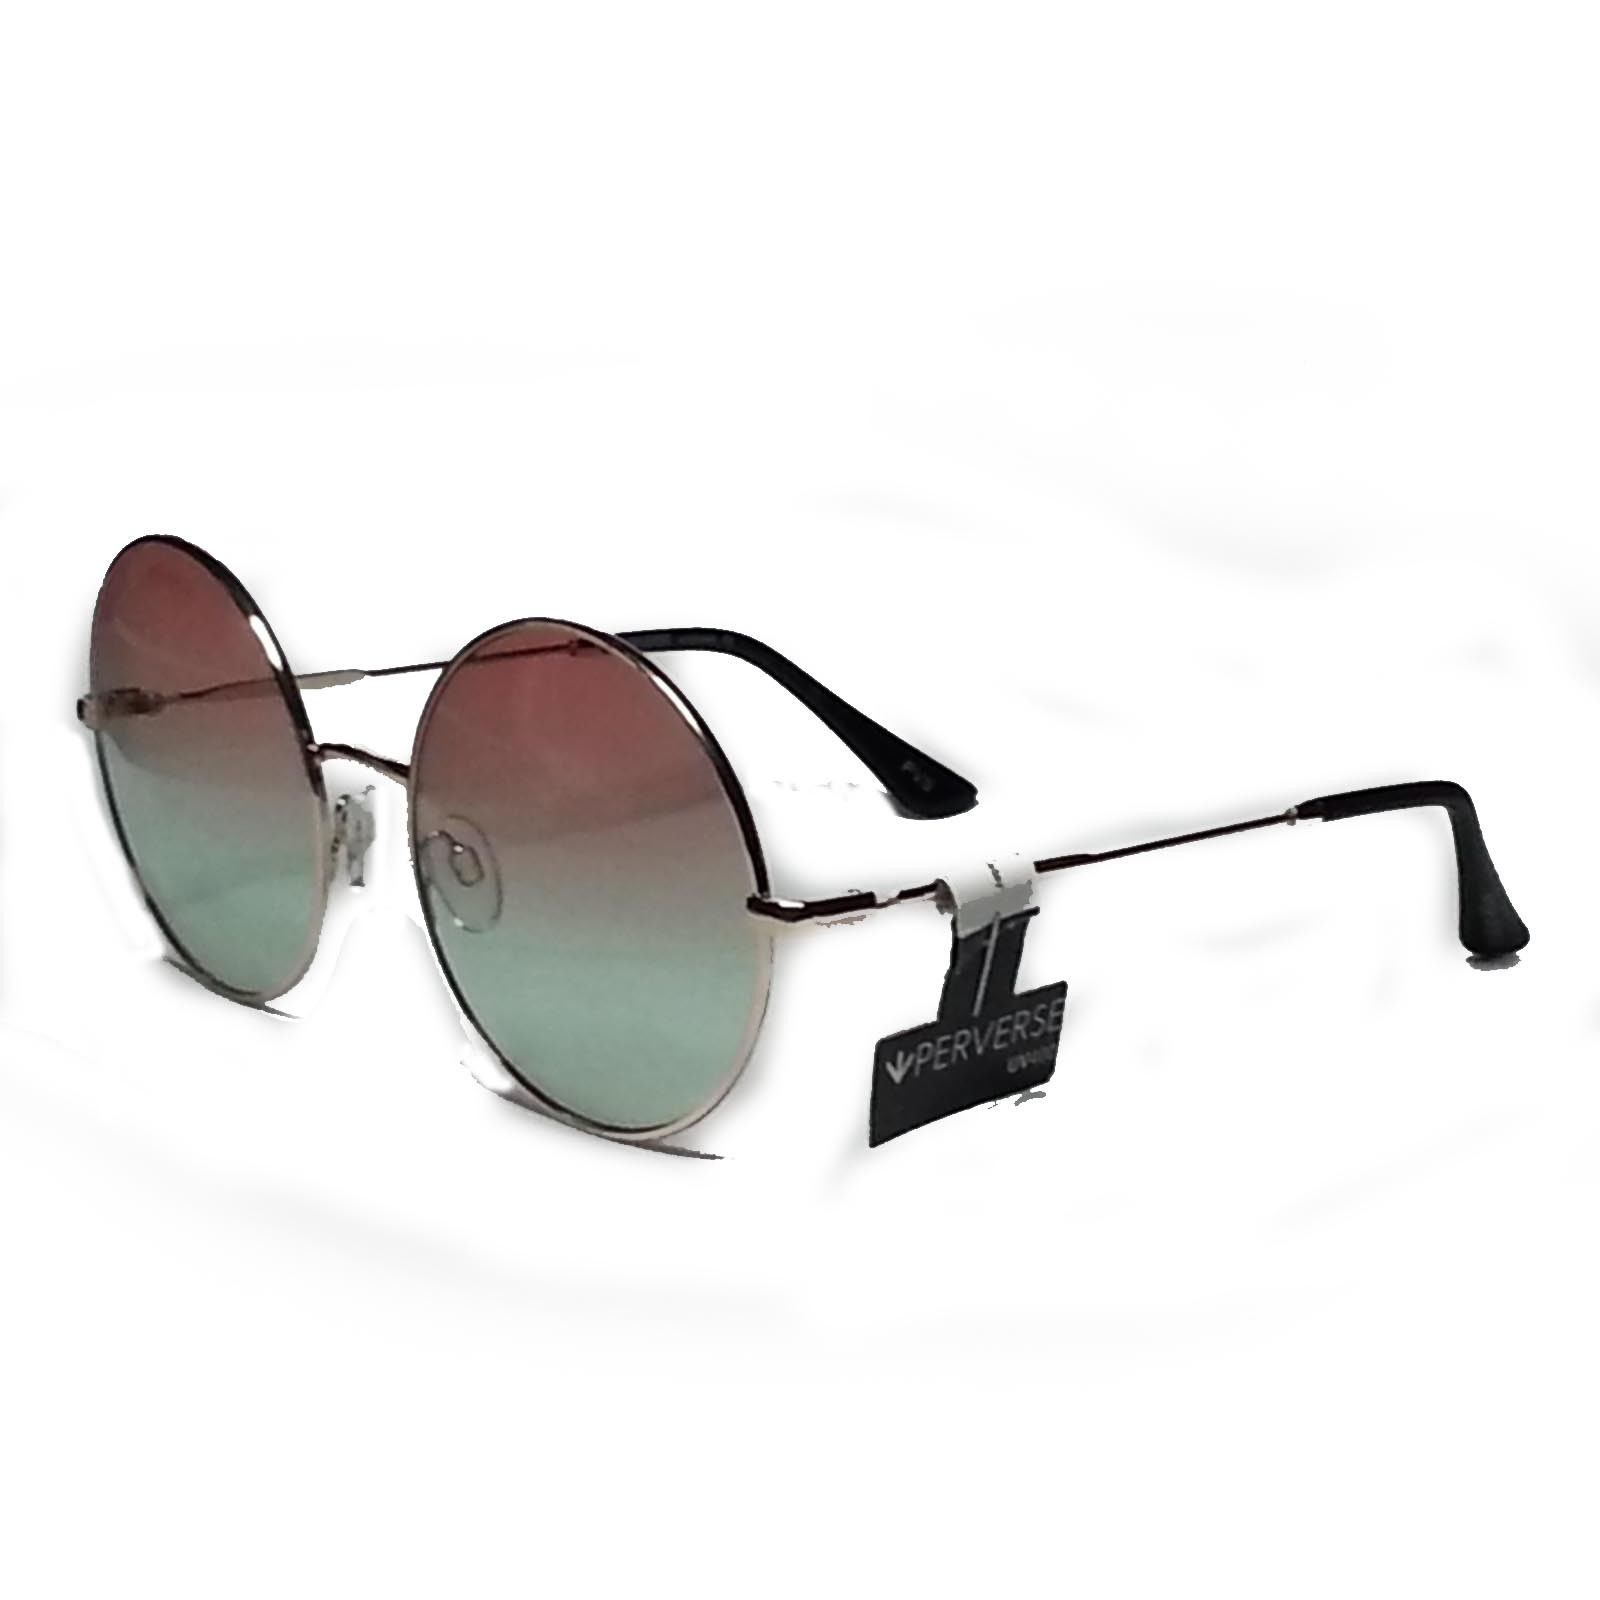 534221435c4bc6  ebay PERVERS women Round sunglasses Half and Half Monday Metal Frame UV400  Lens withing our